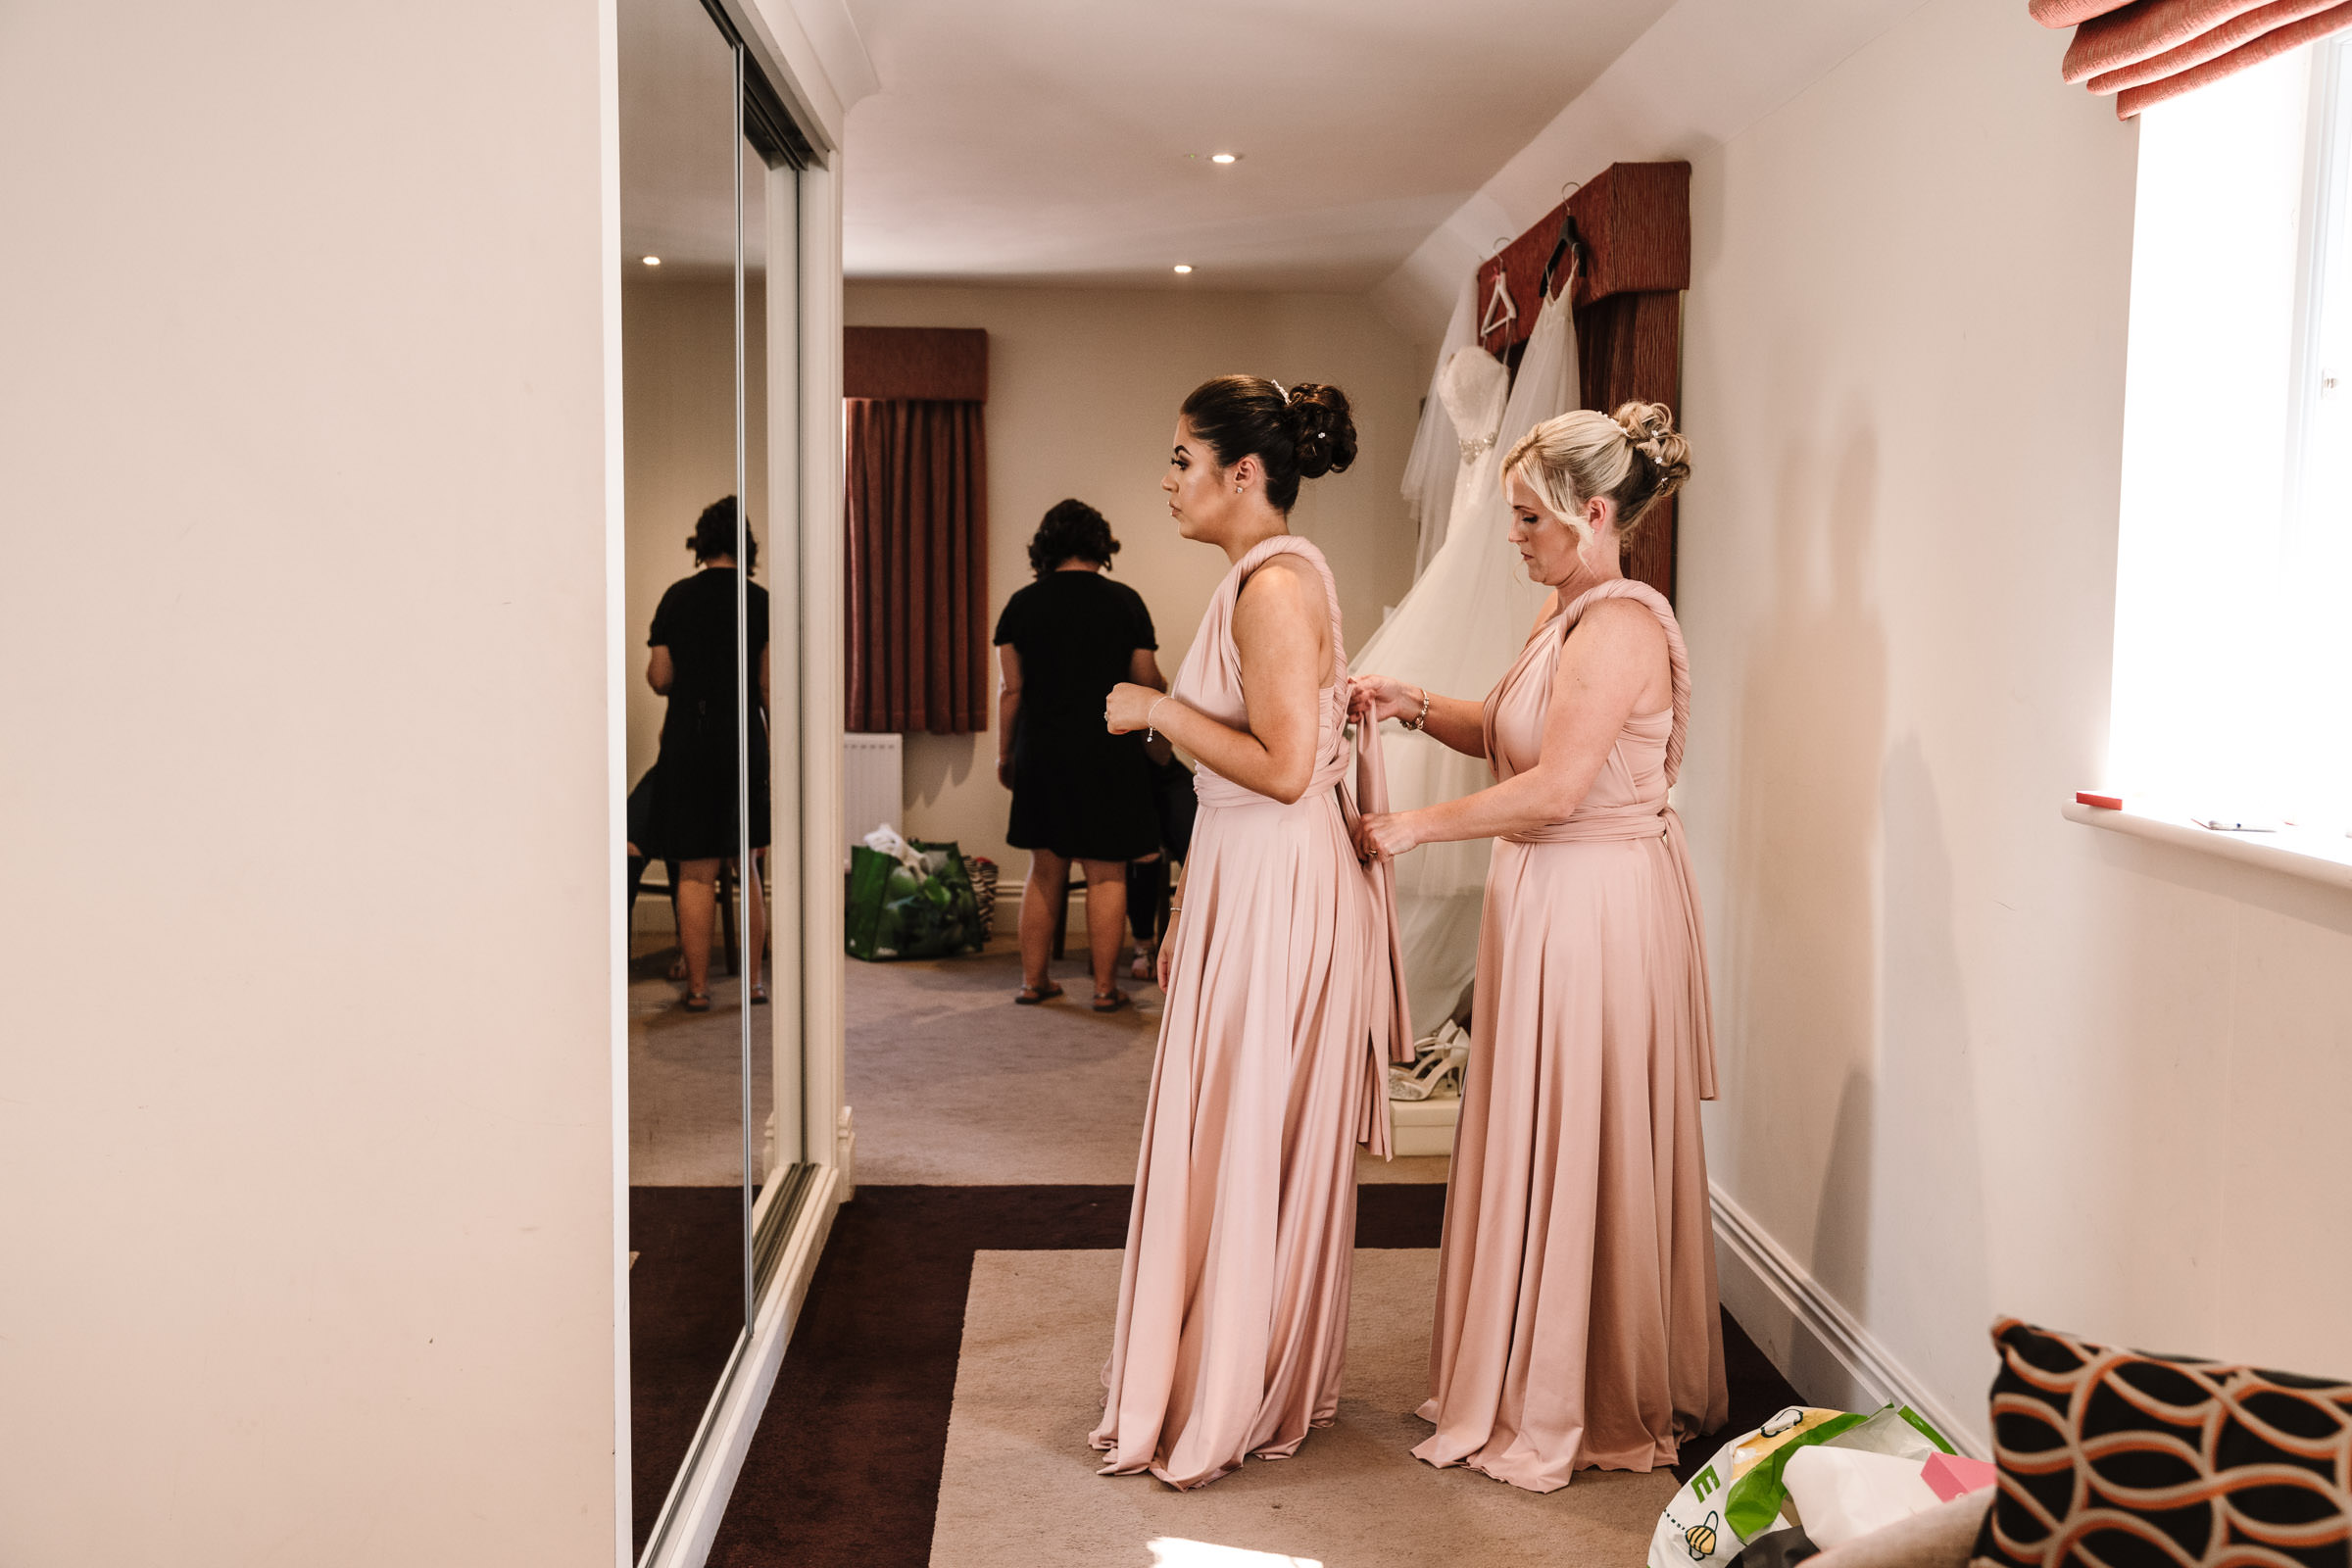 Bridesmaids helping each other put their dresses on, Nailcote hall wedding